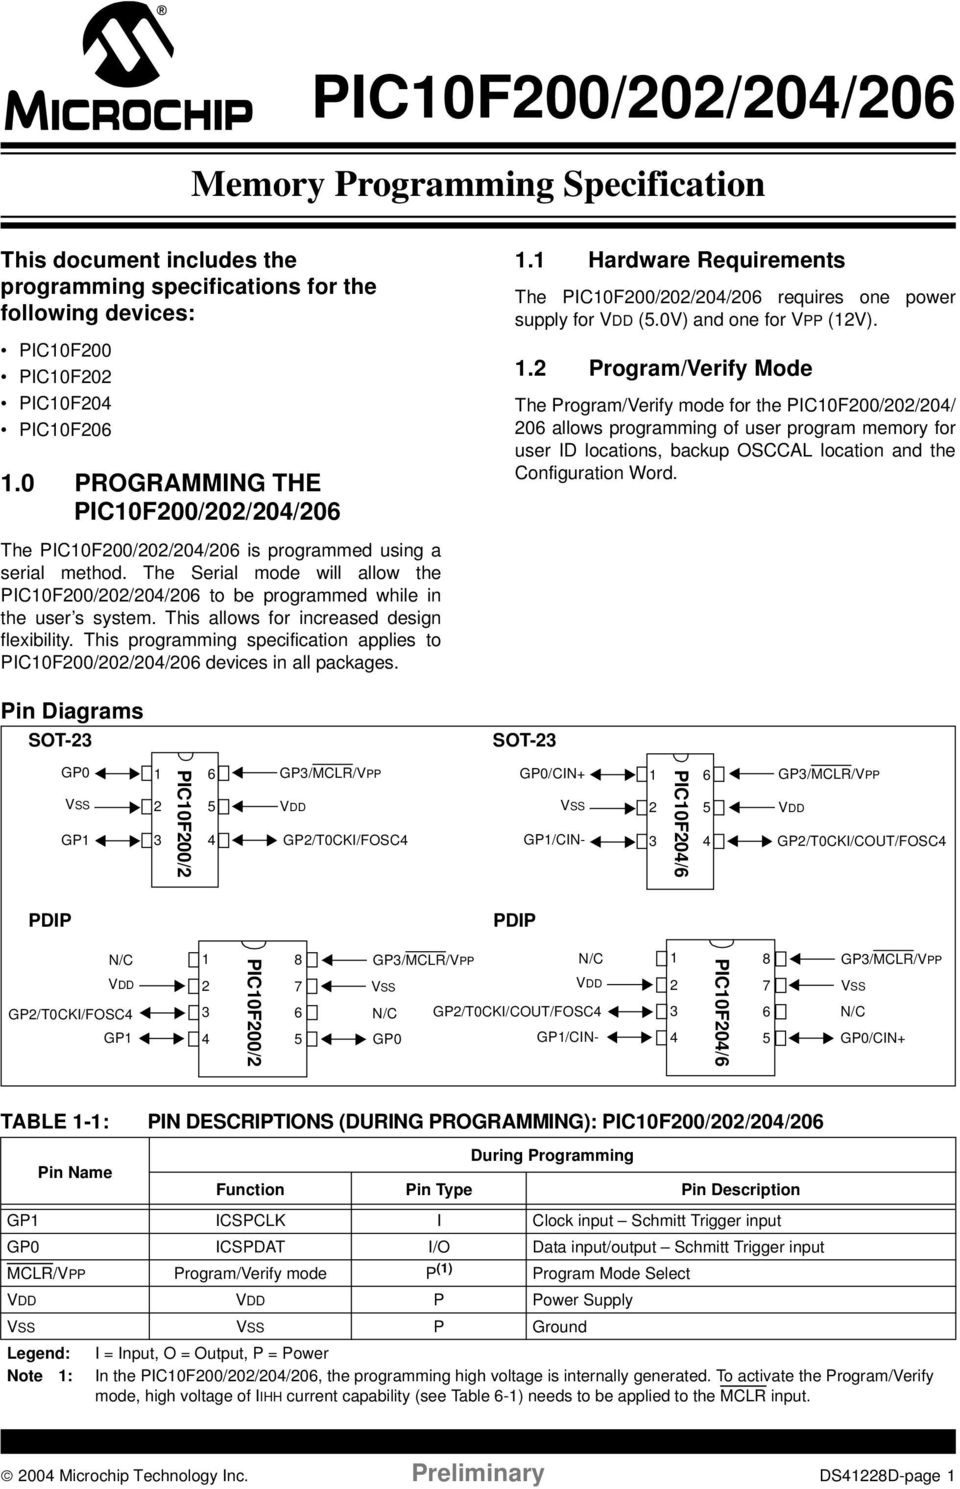 This allows for increased design flexibility. This programming specification applies to PIC10F200/202/204/206 devices in all packages. Pin Diagrams SOT-23 1.